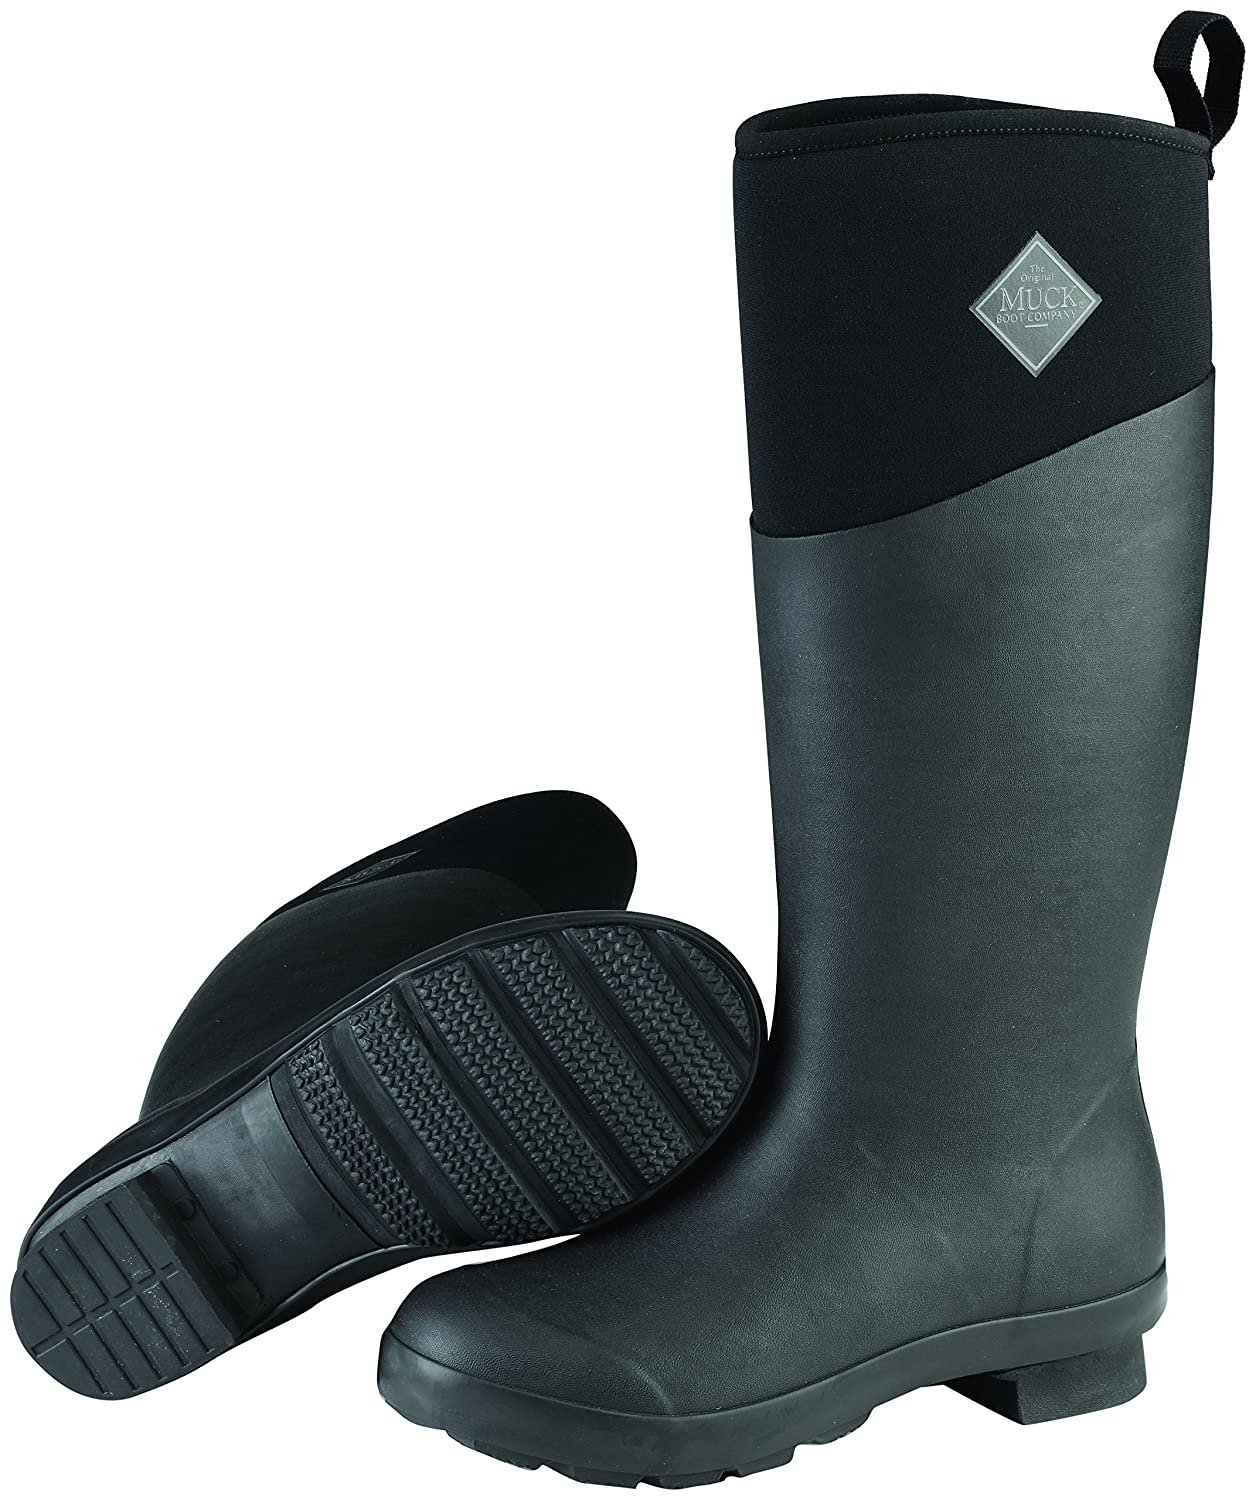 Muck Boot Women's Tremont Wellie Tall Snow B01J5ZZ95Q 6 B(M) US|Black